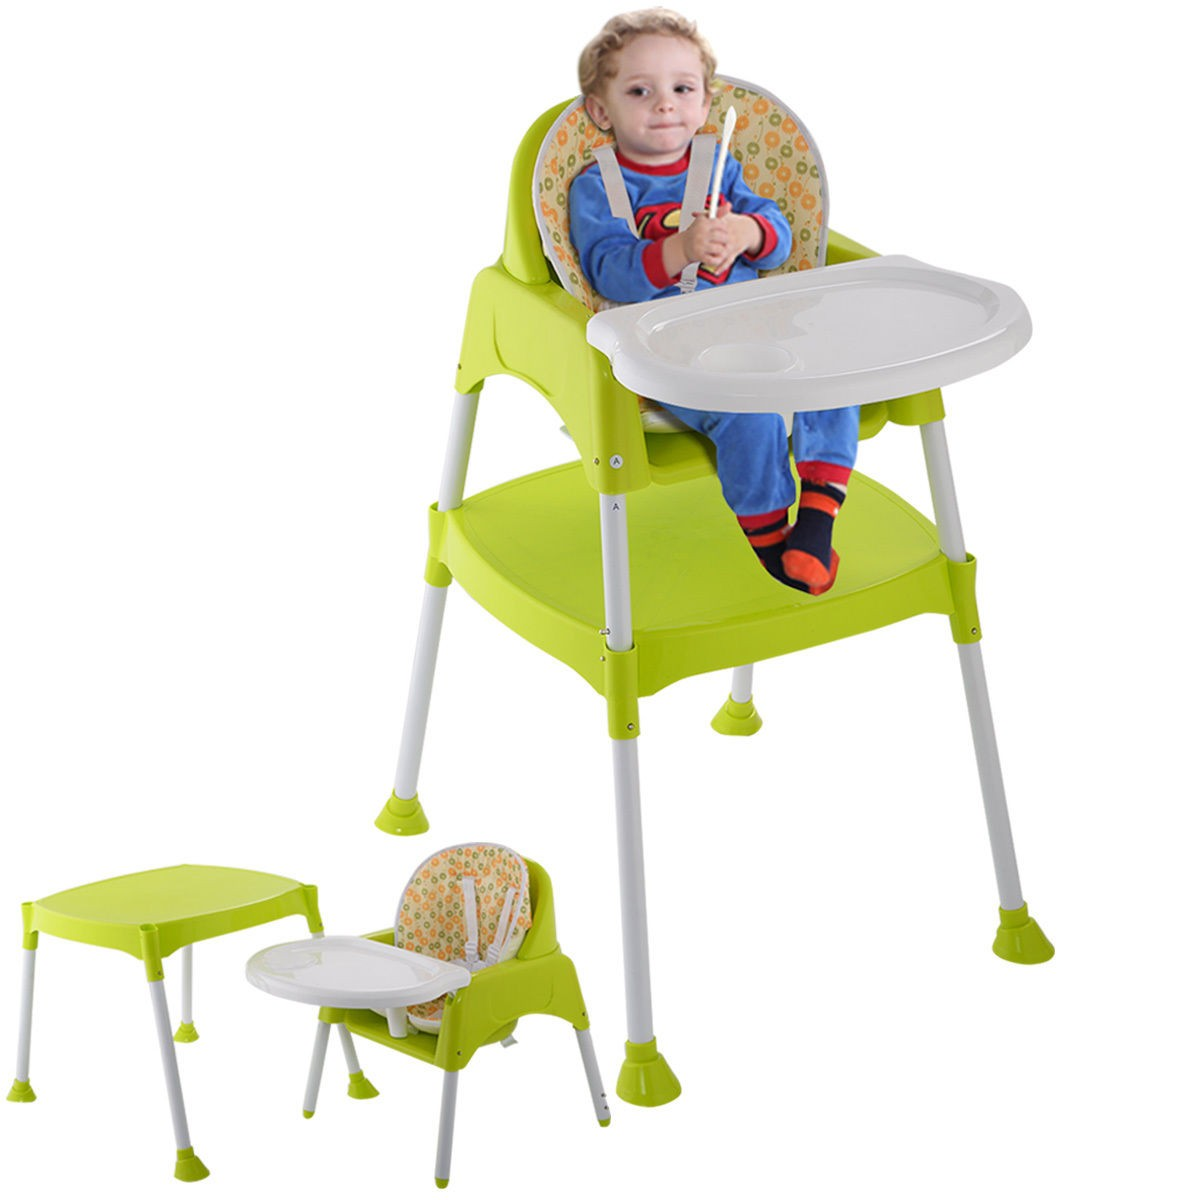 Cute 3 in 1 Baby High Chair Convertible Table Seat Booster Toddler Feeding toddler high chair